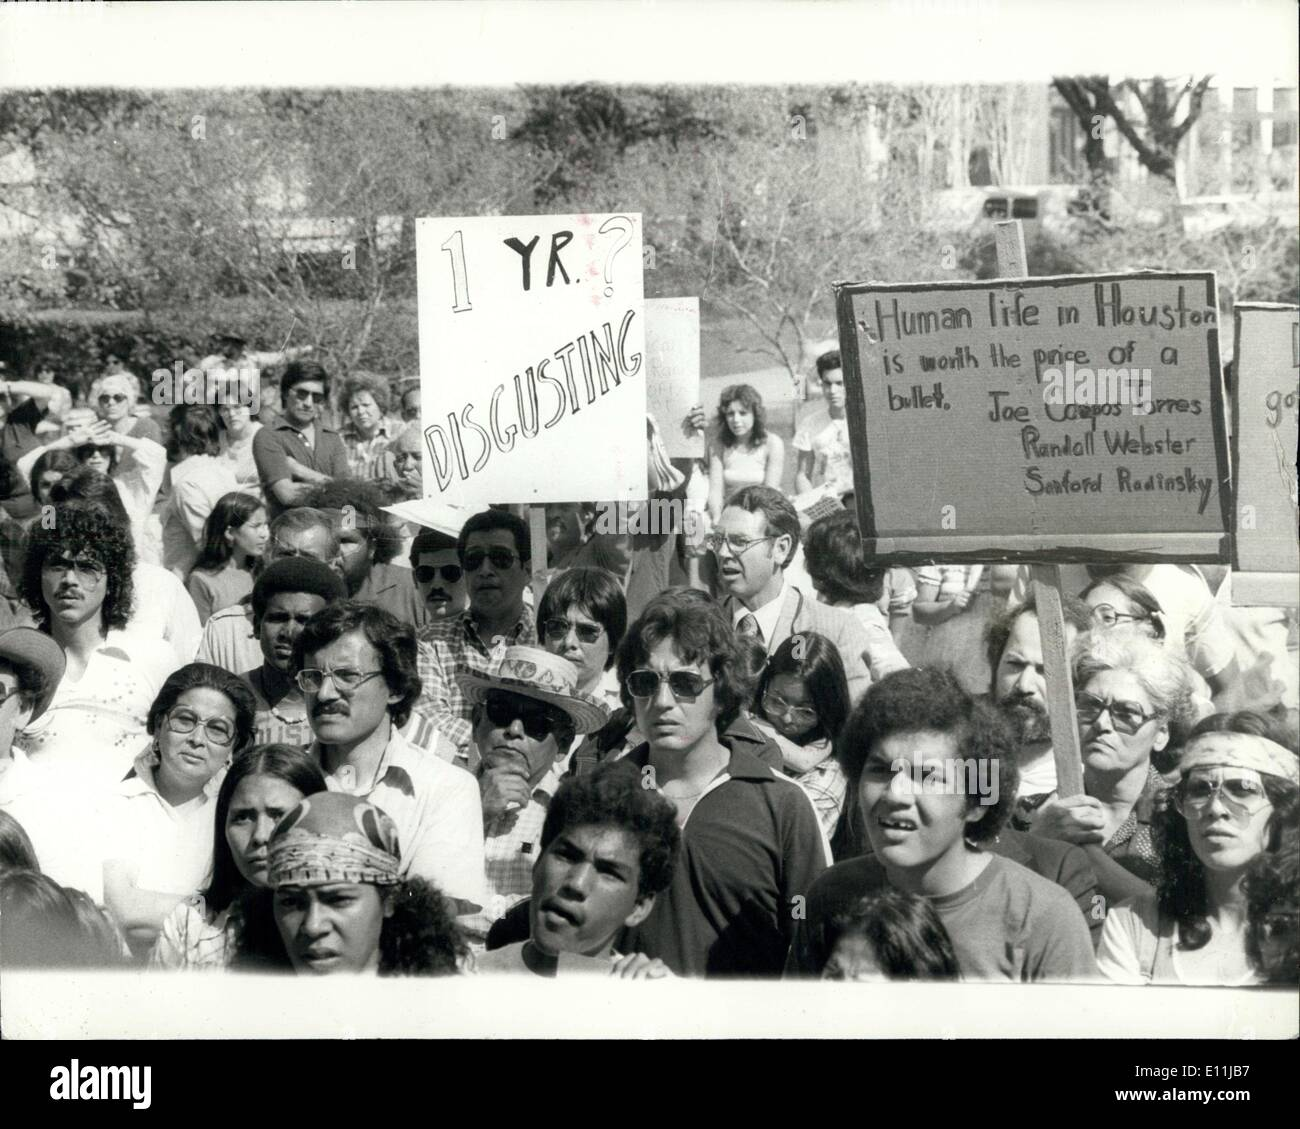 Apr. 14, 1978 - Demonstration over the death of Joe Campos Torres at Houston Texas. U.S.A: Gathering sympathisers as they marched, hundreds of singing and chanting demonstrators merged on a shuttered Houston City Hall recently to morn the death of Joe Campos Torres. Mexican, Americans, Blacks and whites joined in the protest against the one year Federal sentences handed down to three Houston Police Officers involved in what some of the demonstrators termed the ''murder'' drowning of Joe Campos Torres - Stock Image